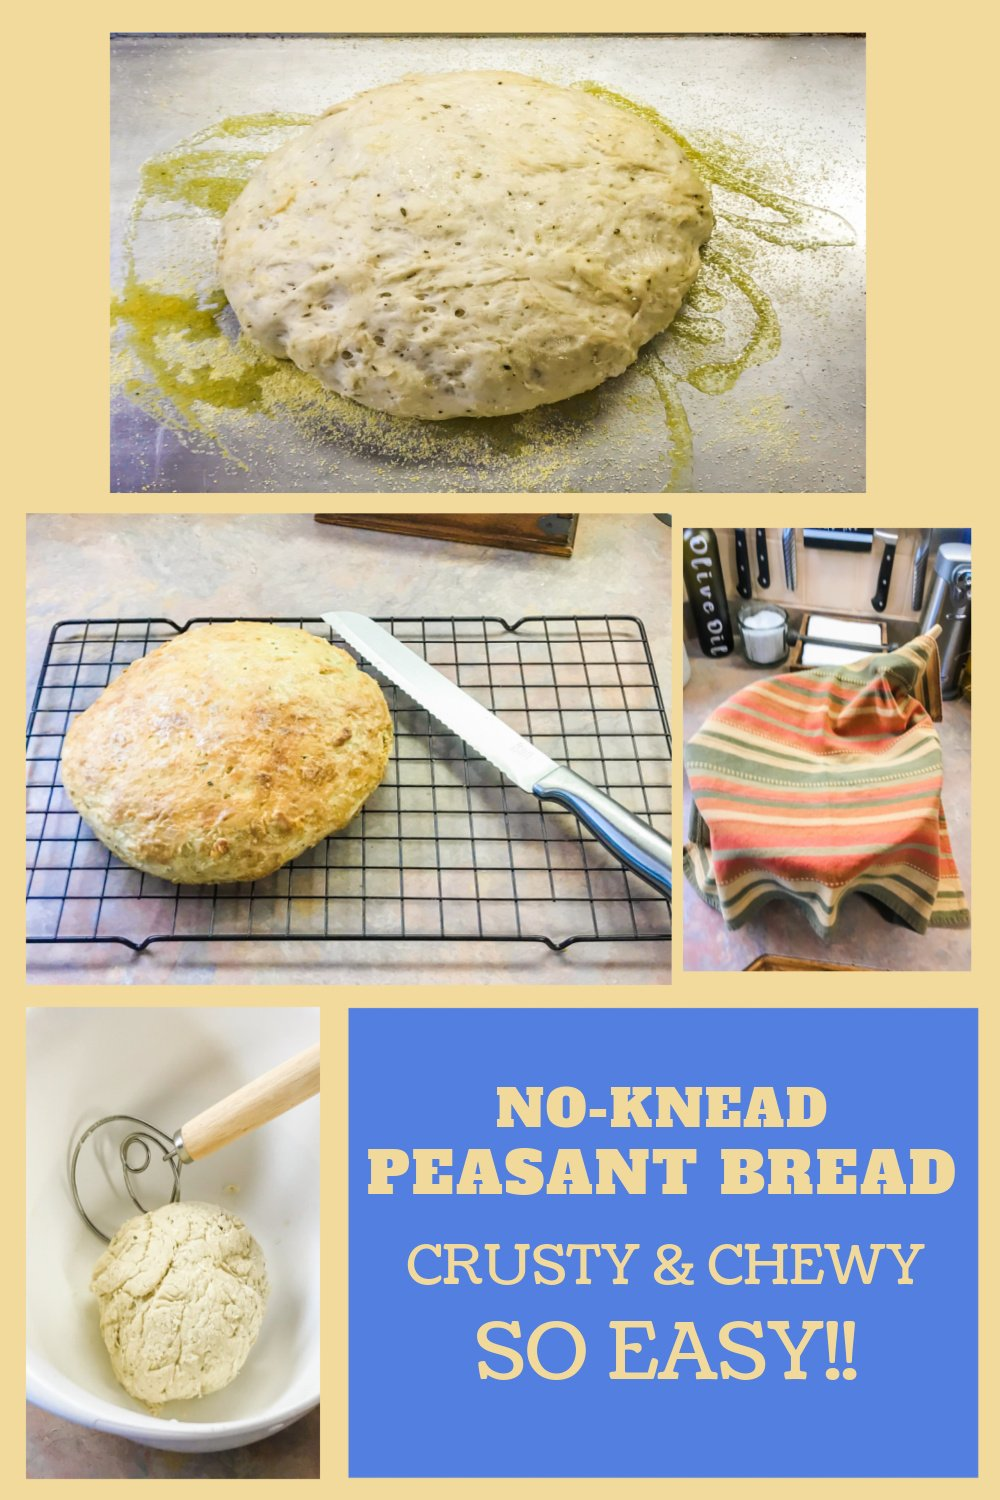 The steps for making peasant bread start to finish.